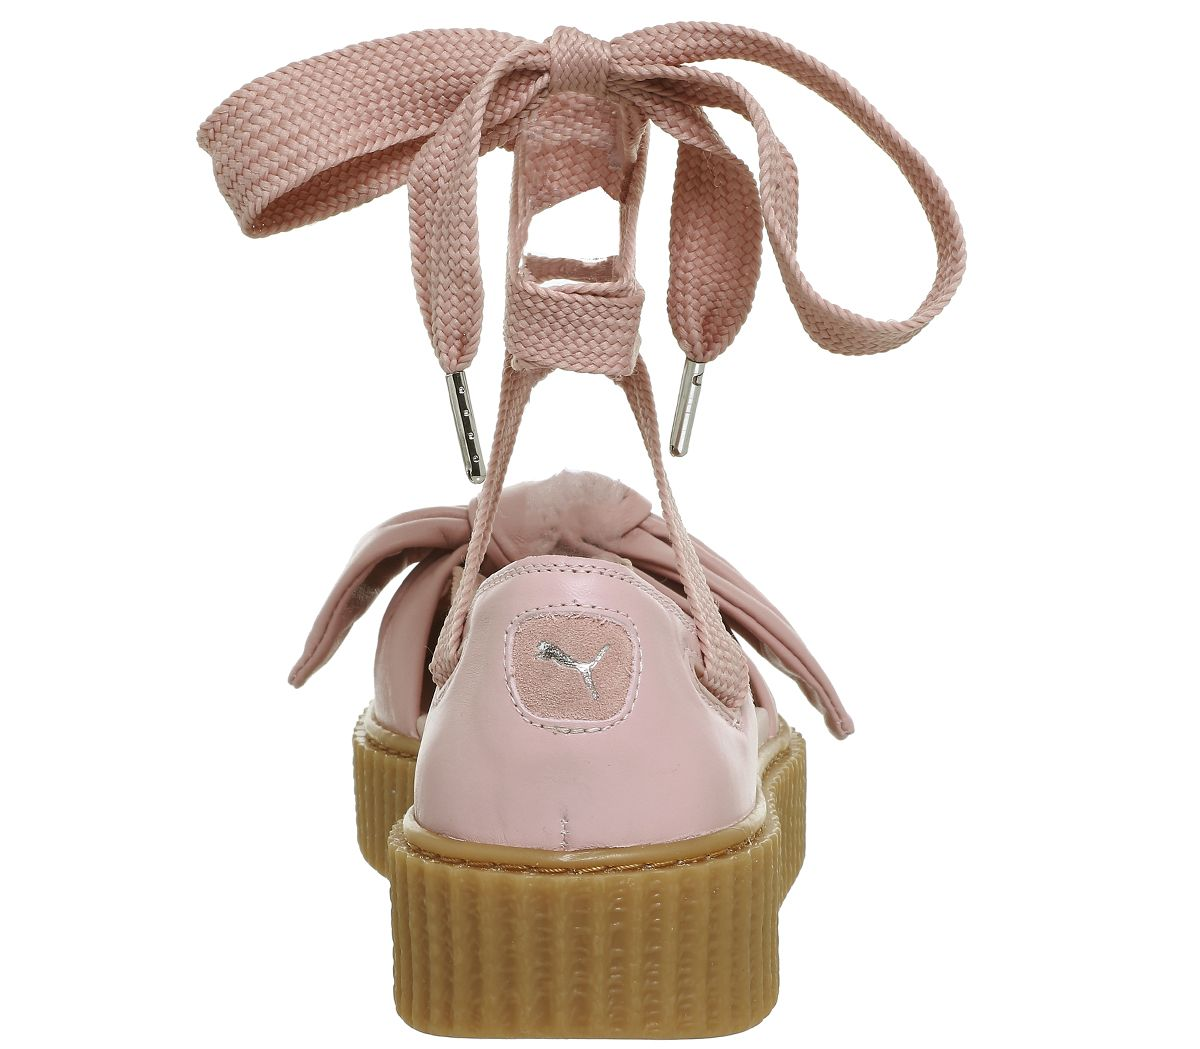 Womens-Puma-Creeper-Ballet-Lace-Pink-Fenty-Sandals thumbnail 9